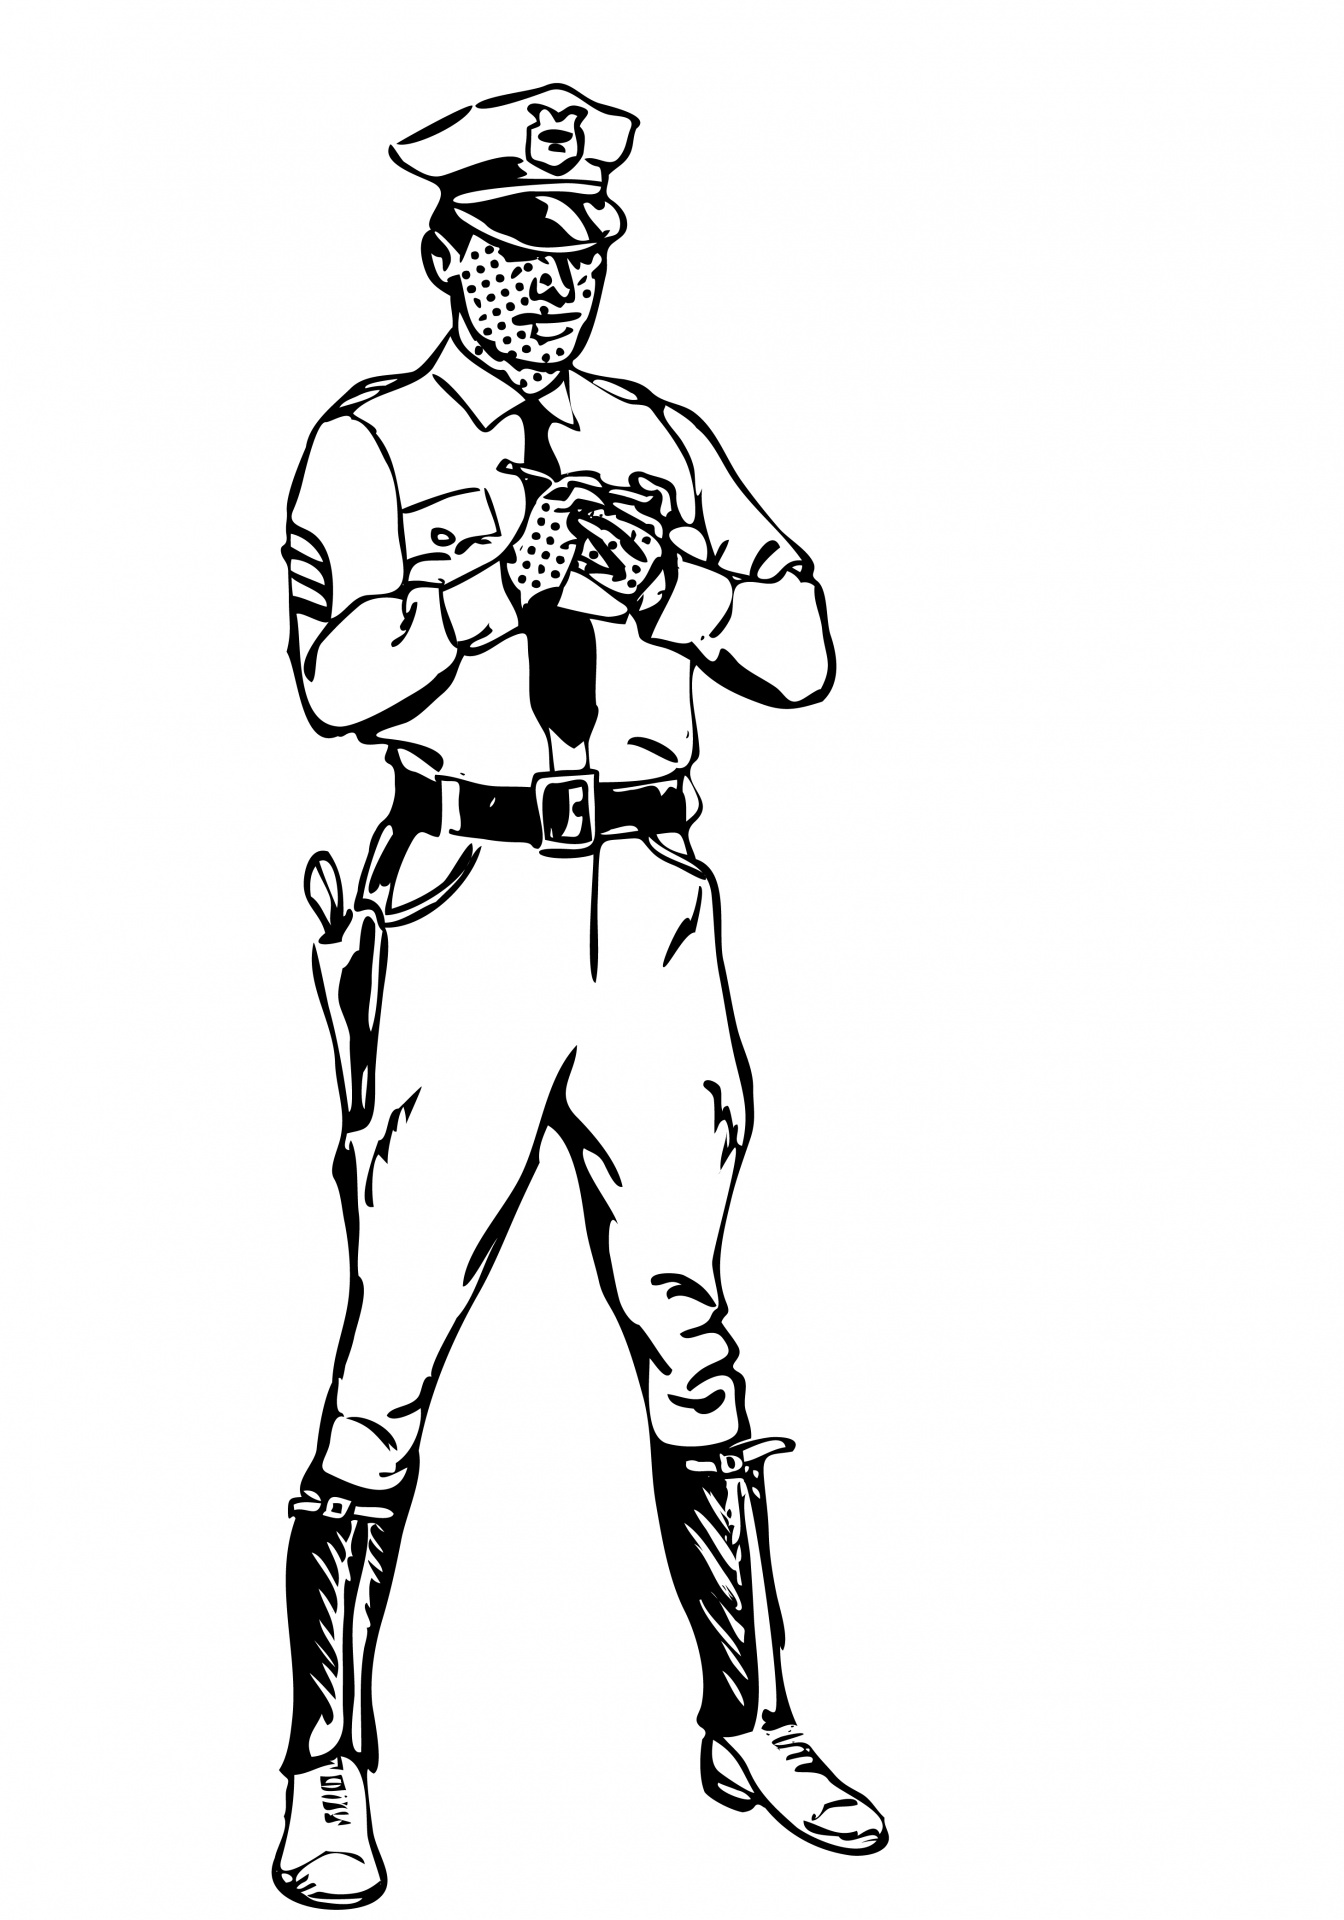 Cop clipart black and white. Police officer free stock